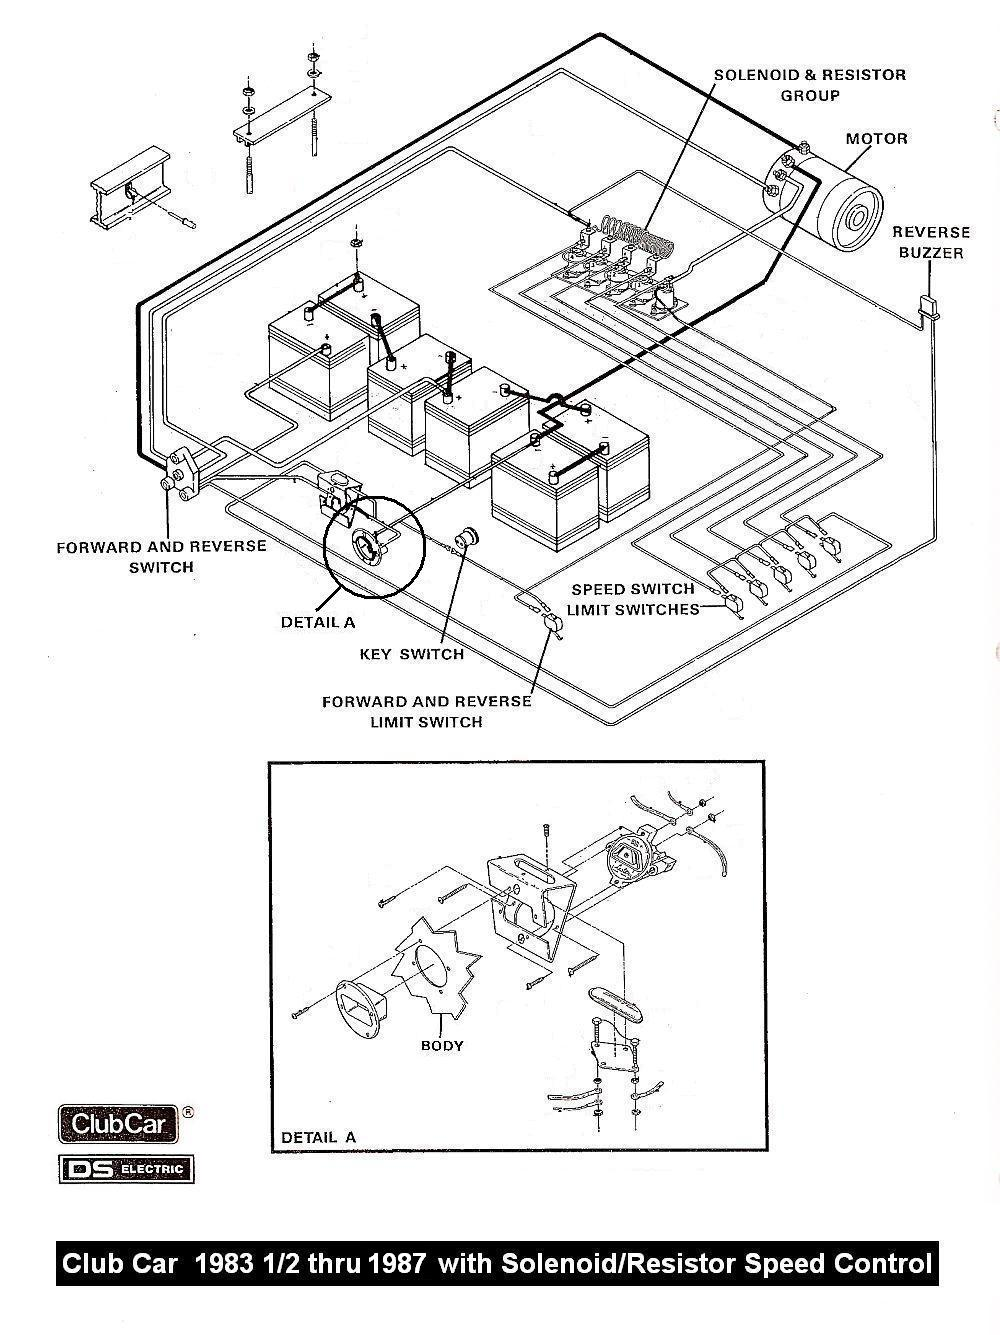 1992 Electric Club Car Wiring Diagram Schematic